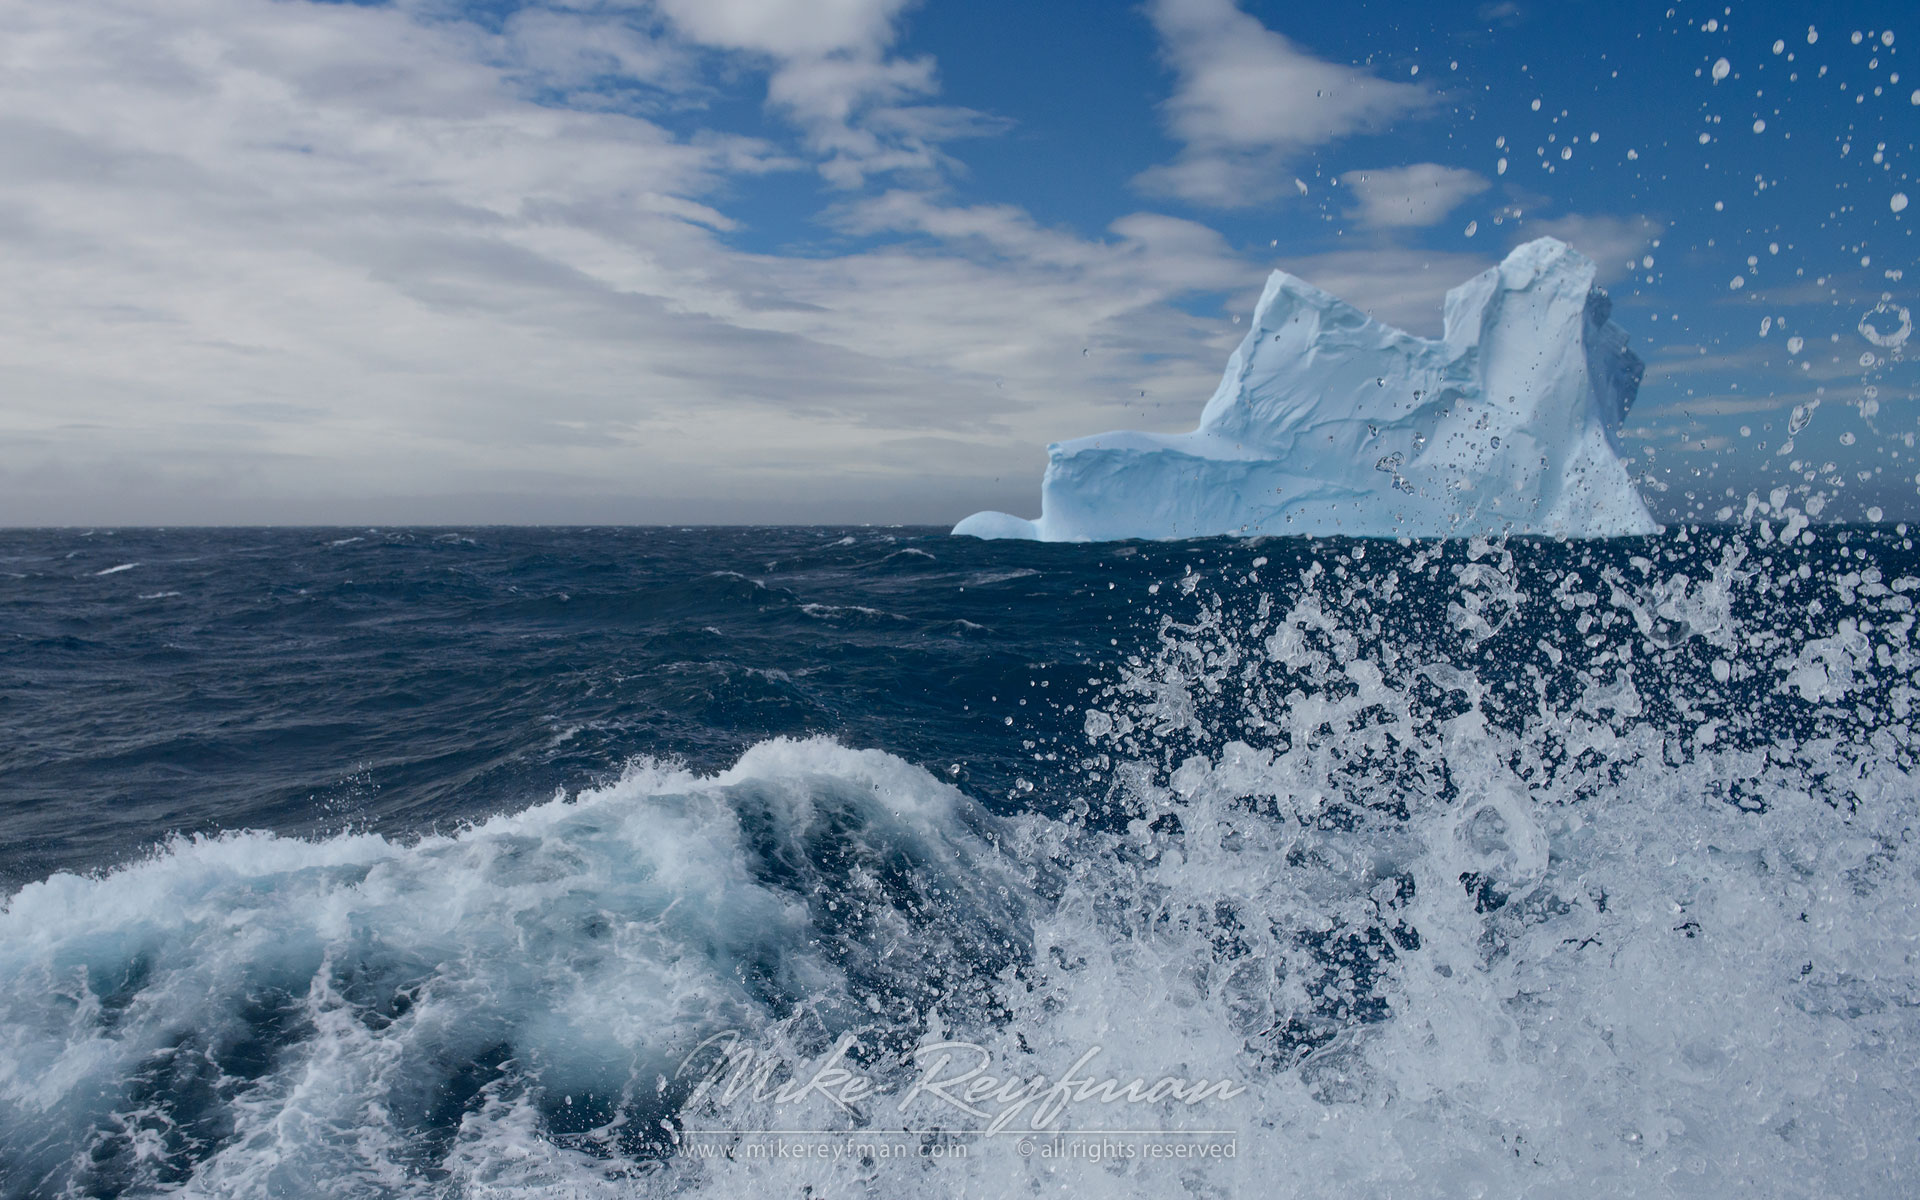 Blue iceberg seen through splashing wave. South Georgia, Sub Antarctic. - Albatrosses-Petrels-Landscapes-South-Georgia-Sub-Antarctic - Mike Reyfman Photography